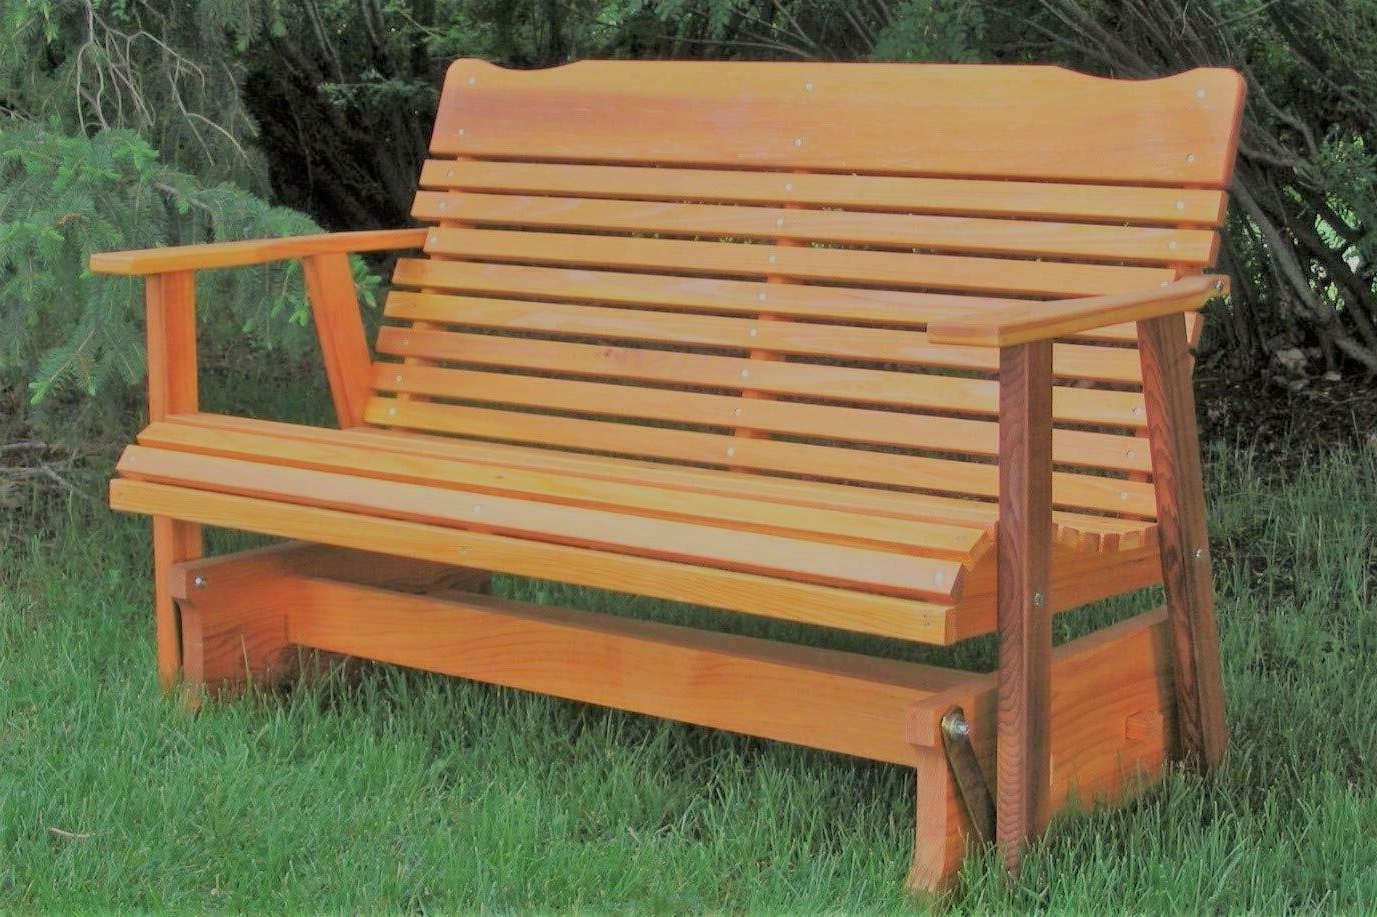 Wood Glider Bench Outdoor Patio Furniture Garden Deck Rocker Porch Amish Crafted For Fashionable Hardwood Porch Glider Benches (View 6 of 30)